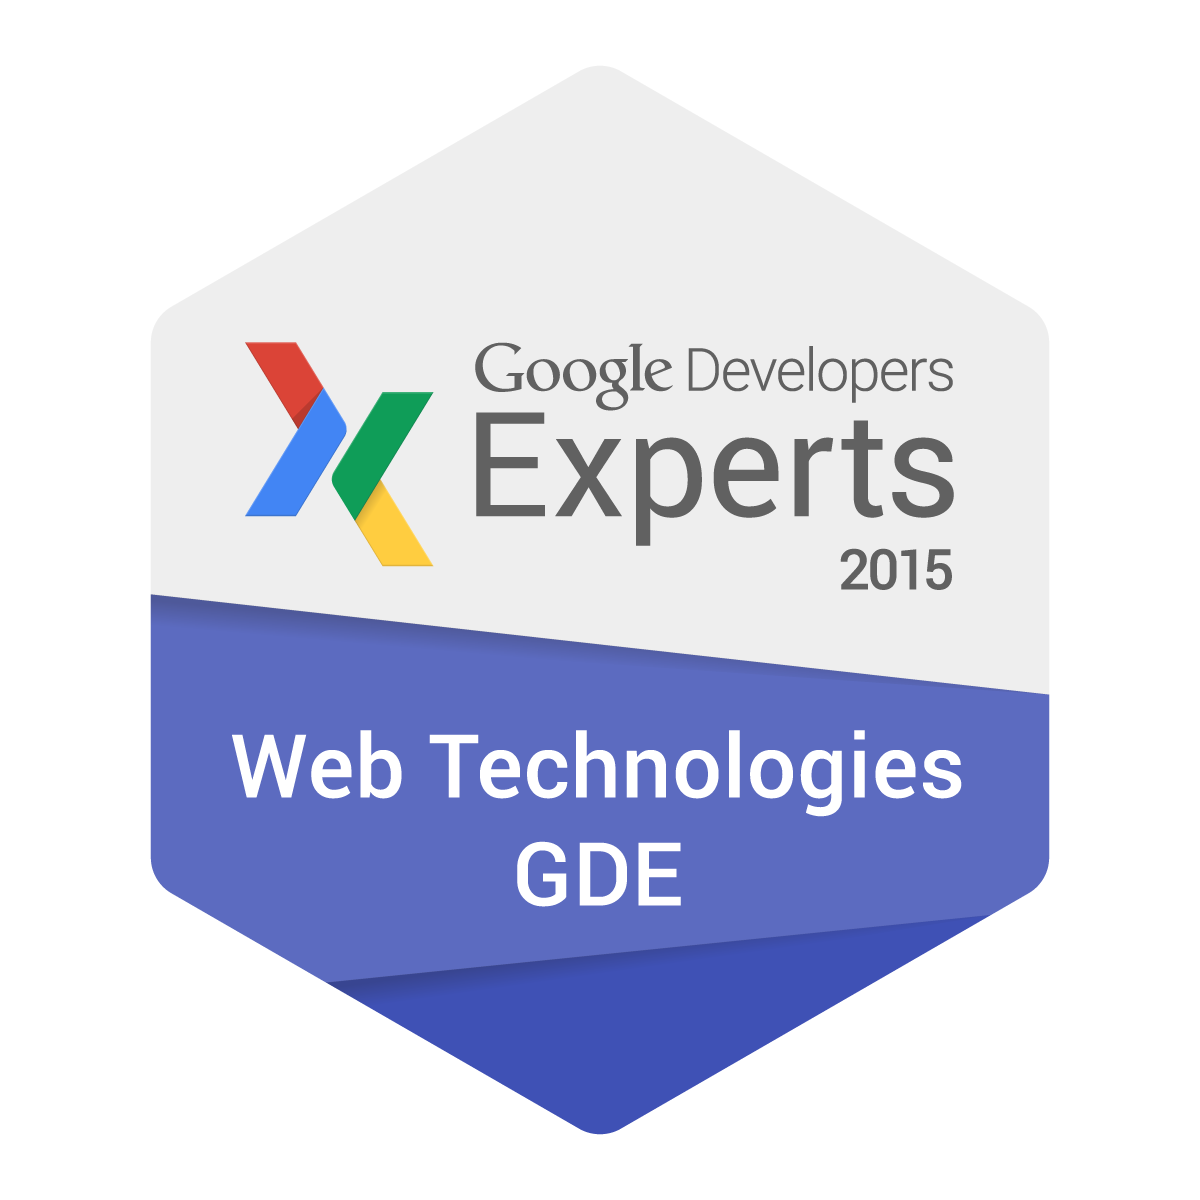 GDE for Web Technologies